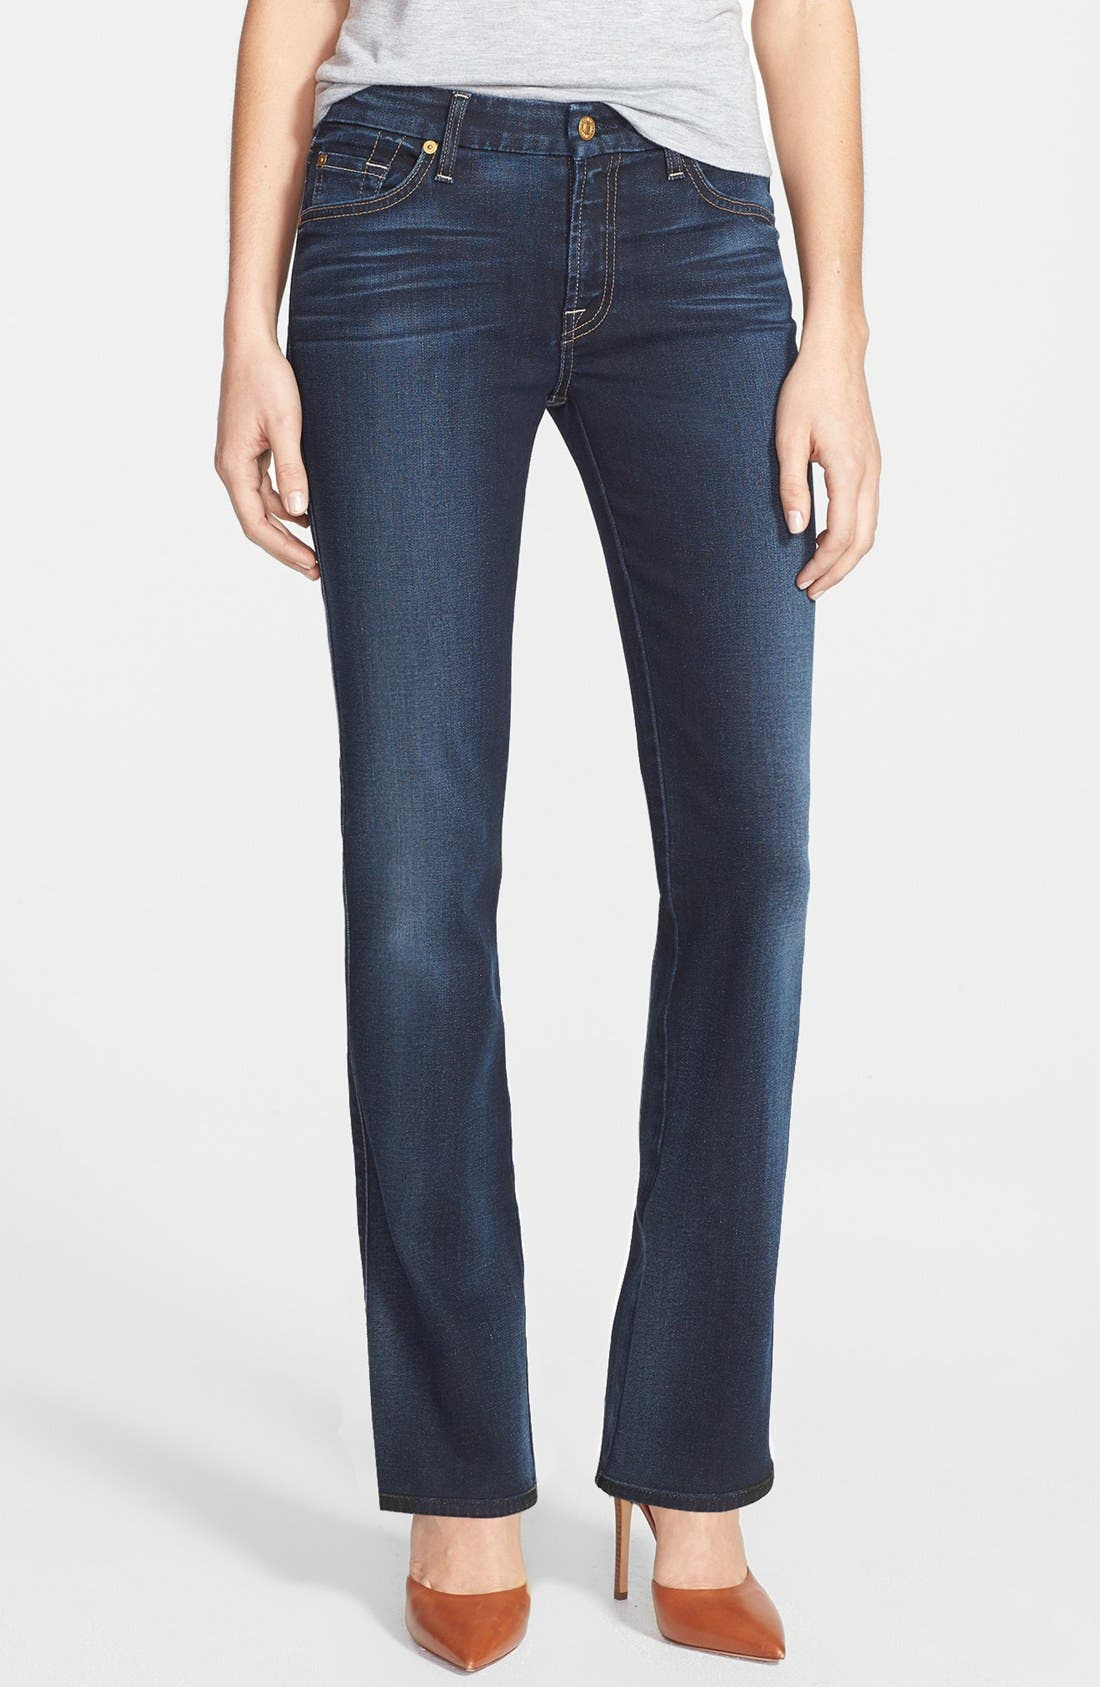 Alternate Image 1 Selected - 7 For All Mankind® 'Kimmie' Bootcut Jeans (Merci Blue)